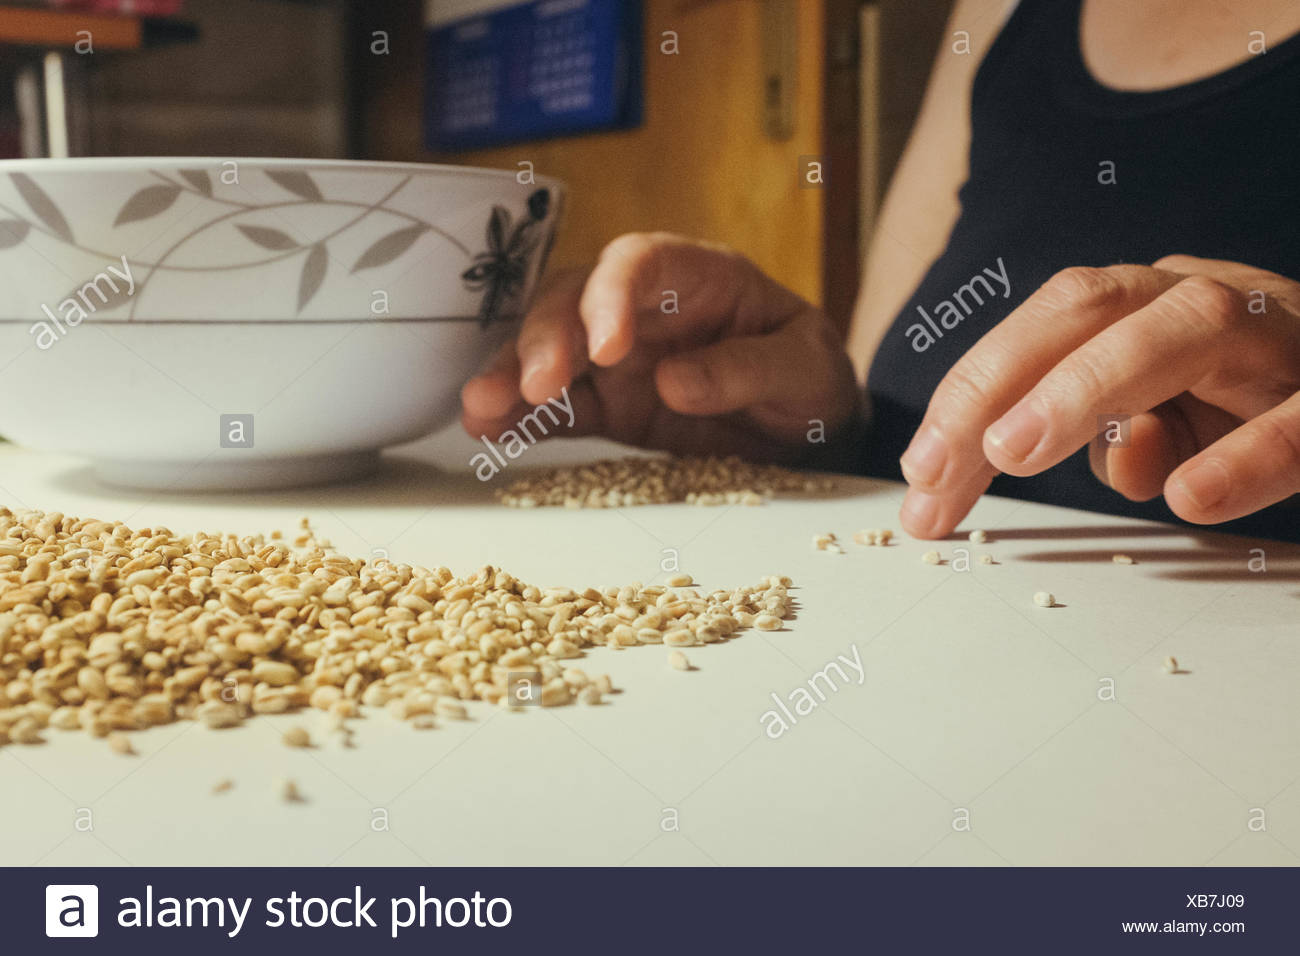 Woman Separating Stones From Grains On Table - Stock Image